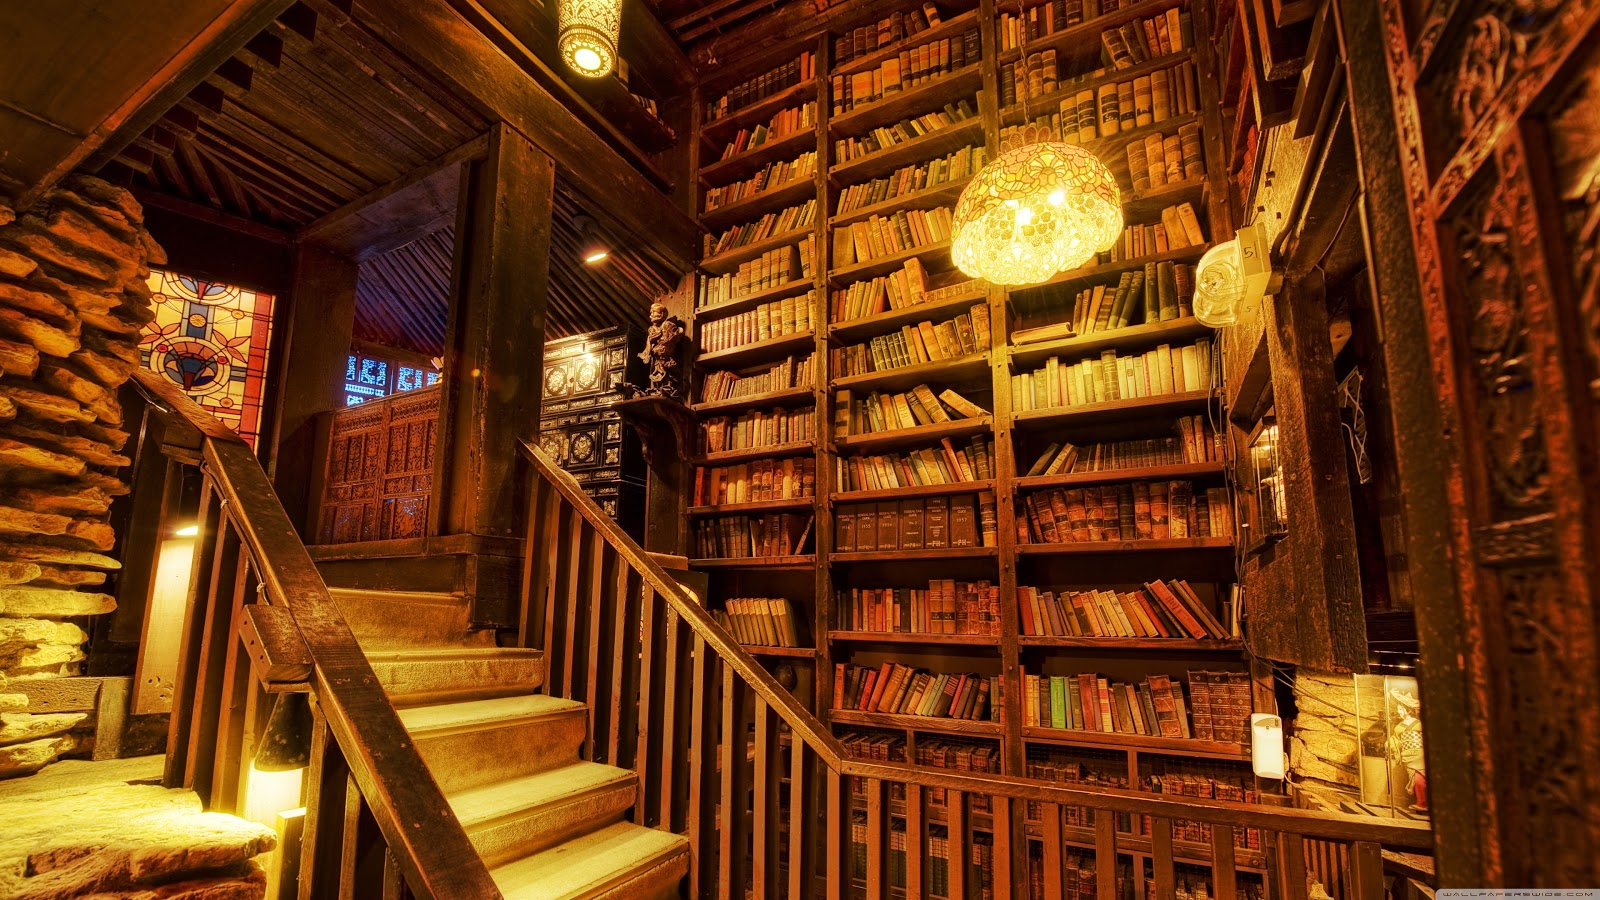 http://2.bp.blogspot.com/-fhw9TL0pro8/UMm4kpvWjtI/AAAAAAAARSo/YalMMi1L_7A/s1600/house_on_the_rock_library-wallpaper-3840x2160.jpg